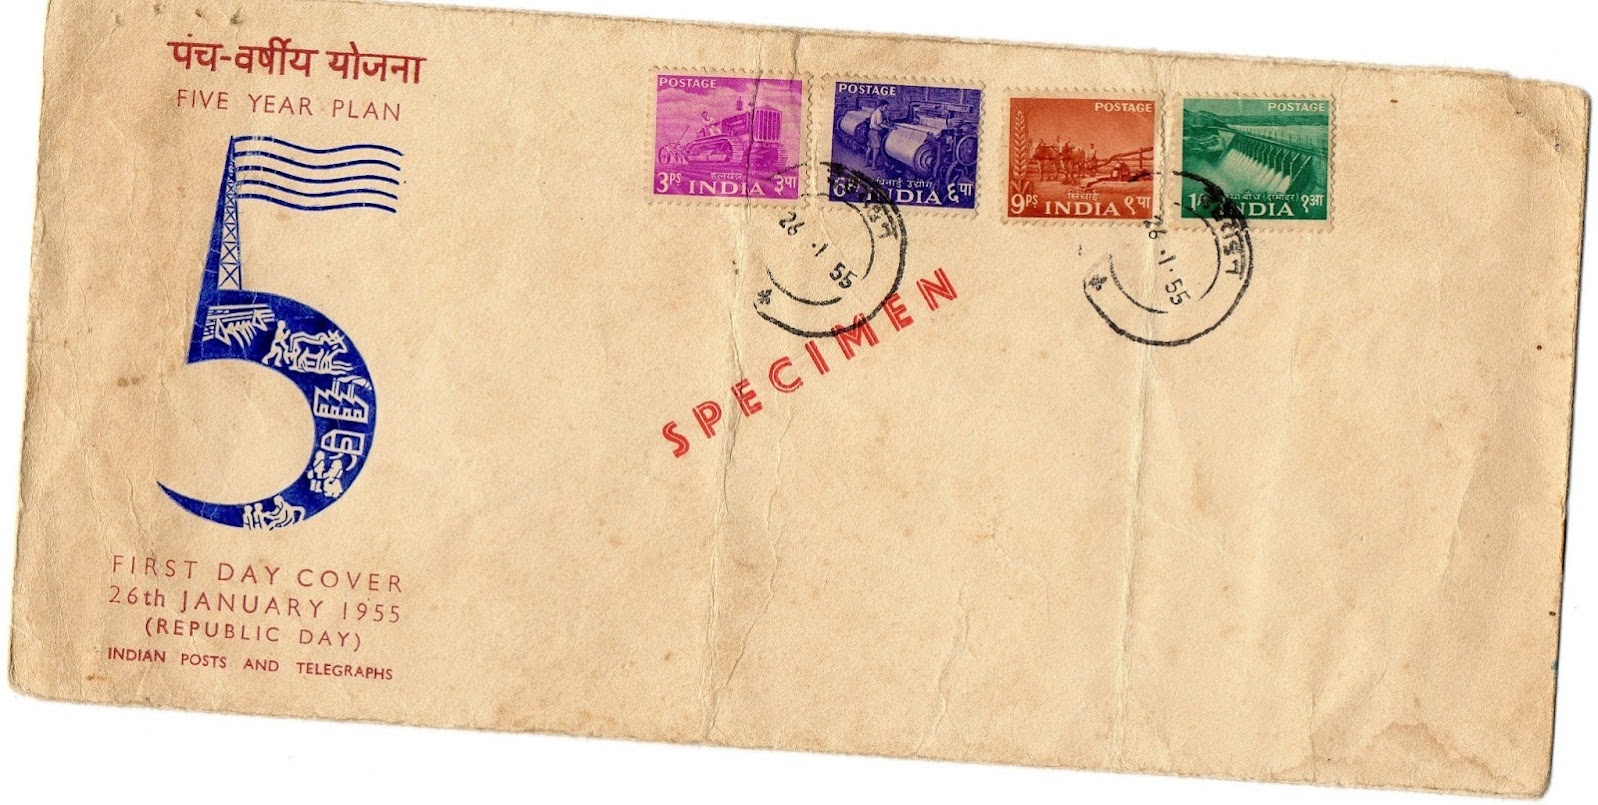 Indian stamp issued on 26 Jan 1955 having a postage 18 Paisa